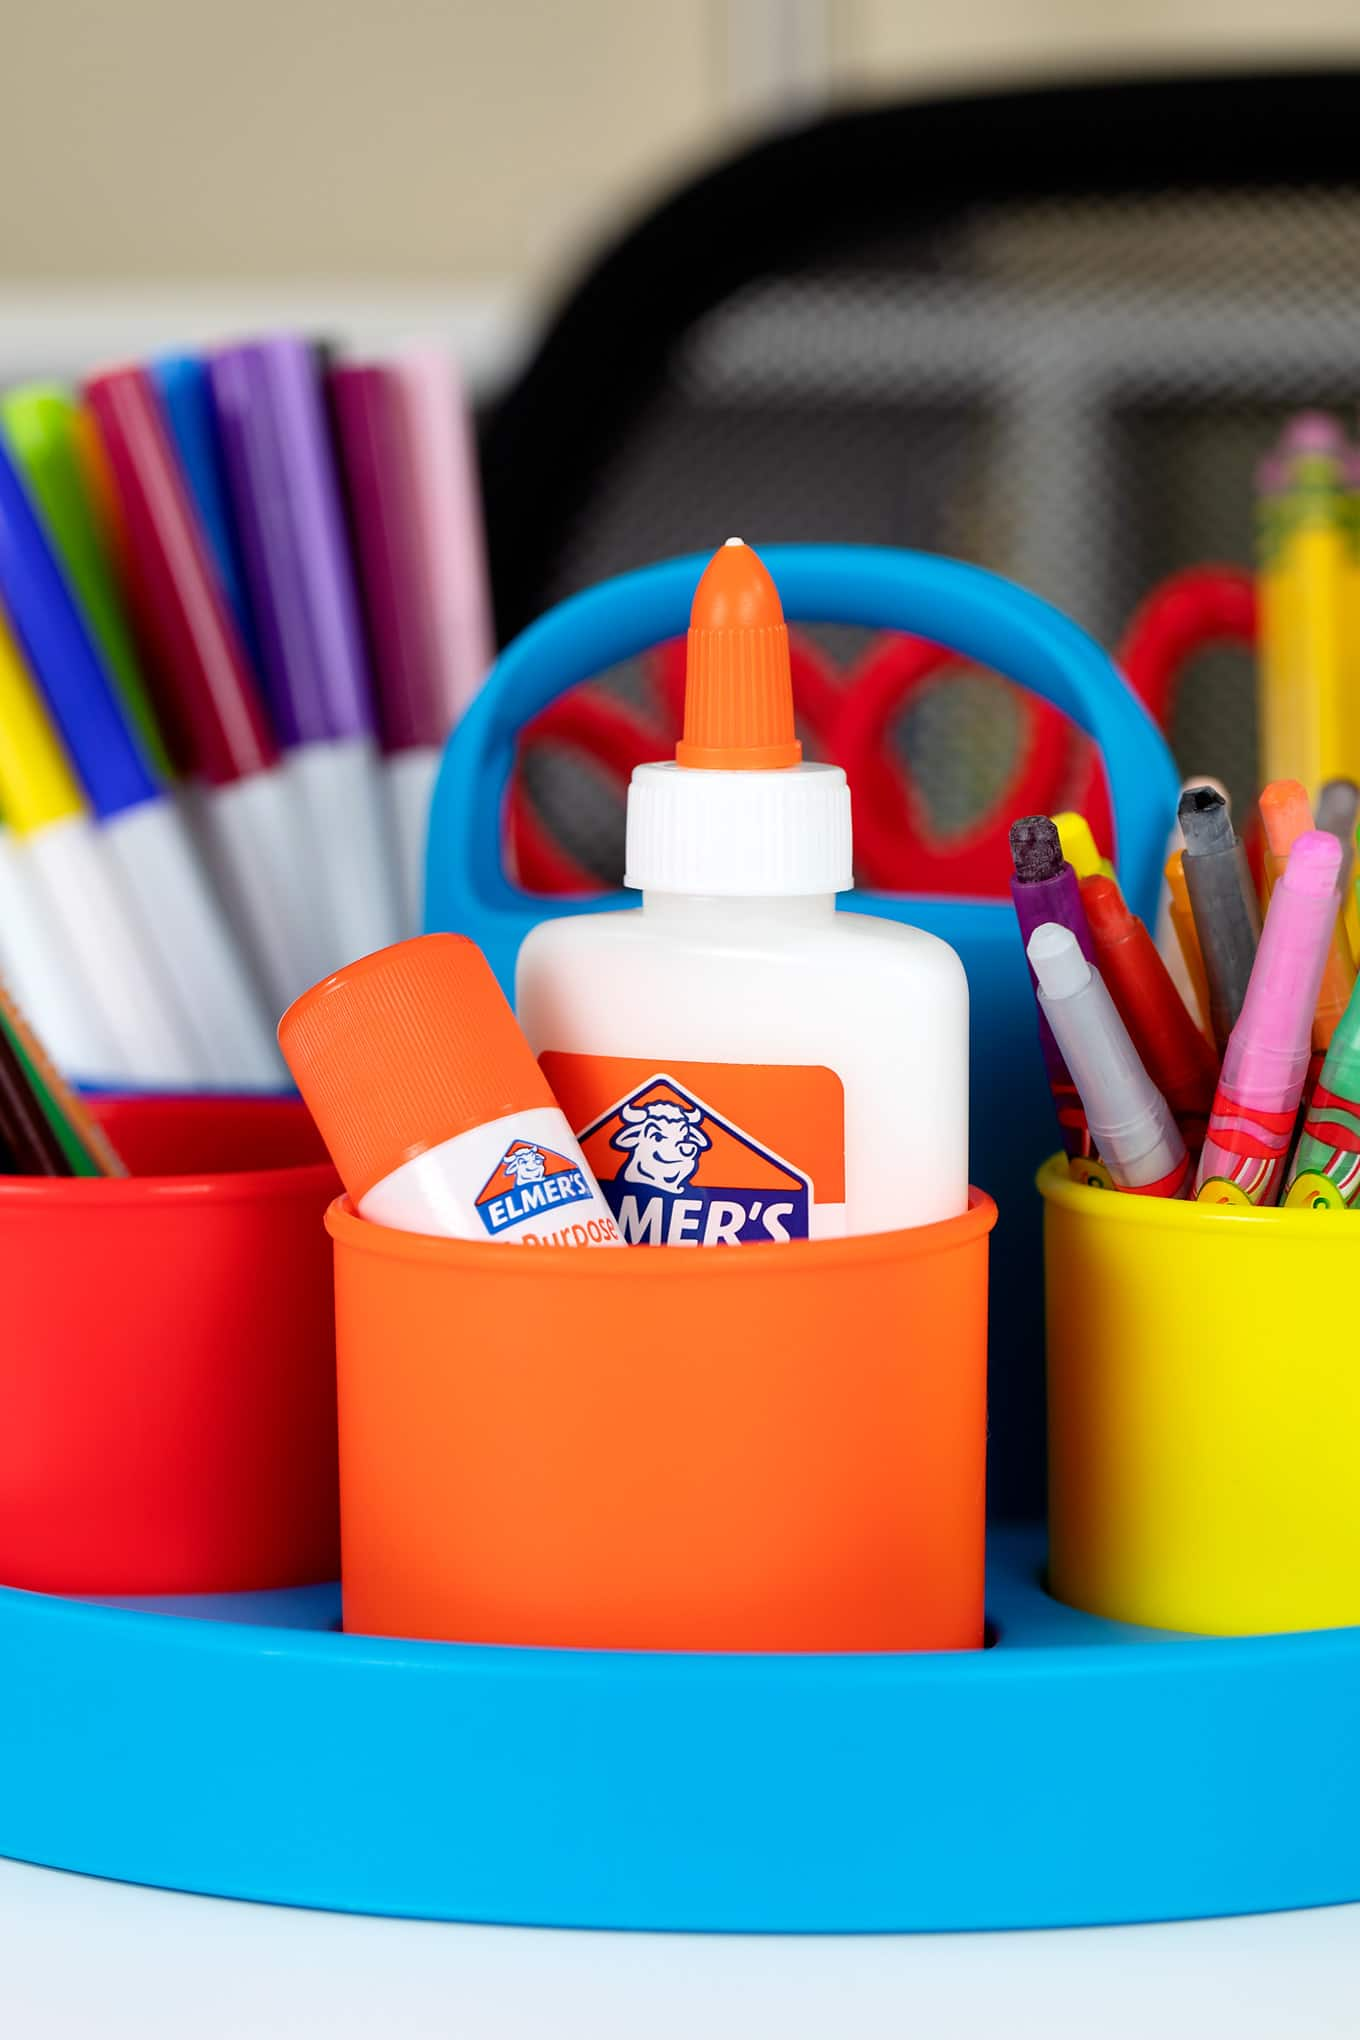 Colorful School Supply Caddy for a Kids Homework Station